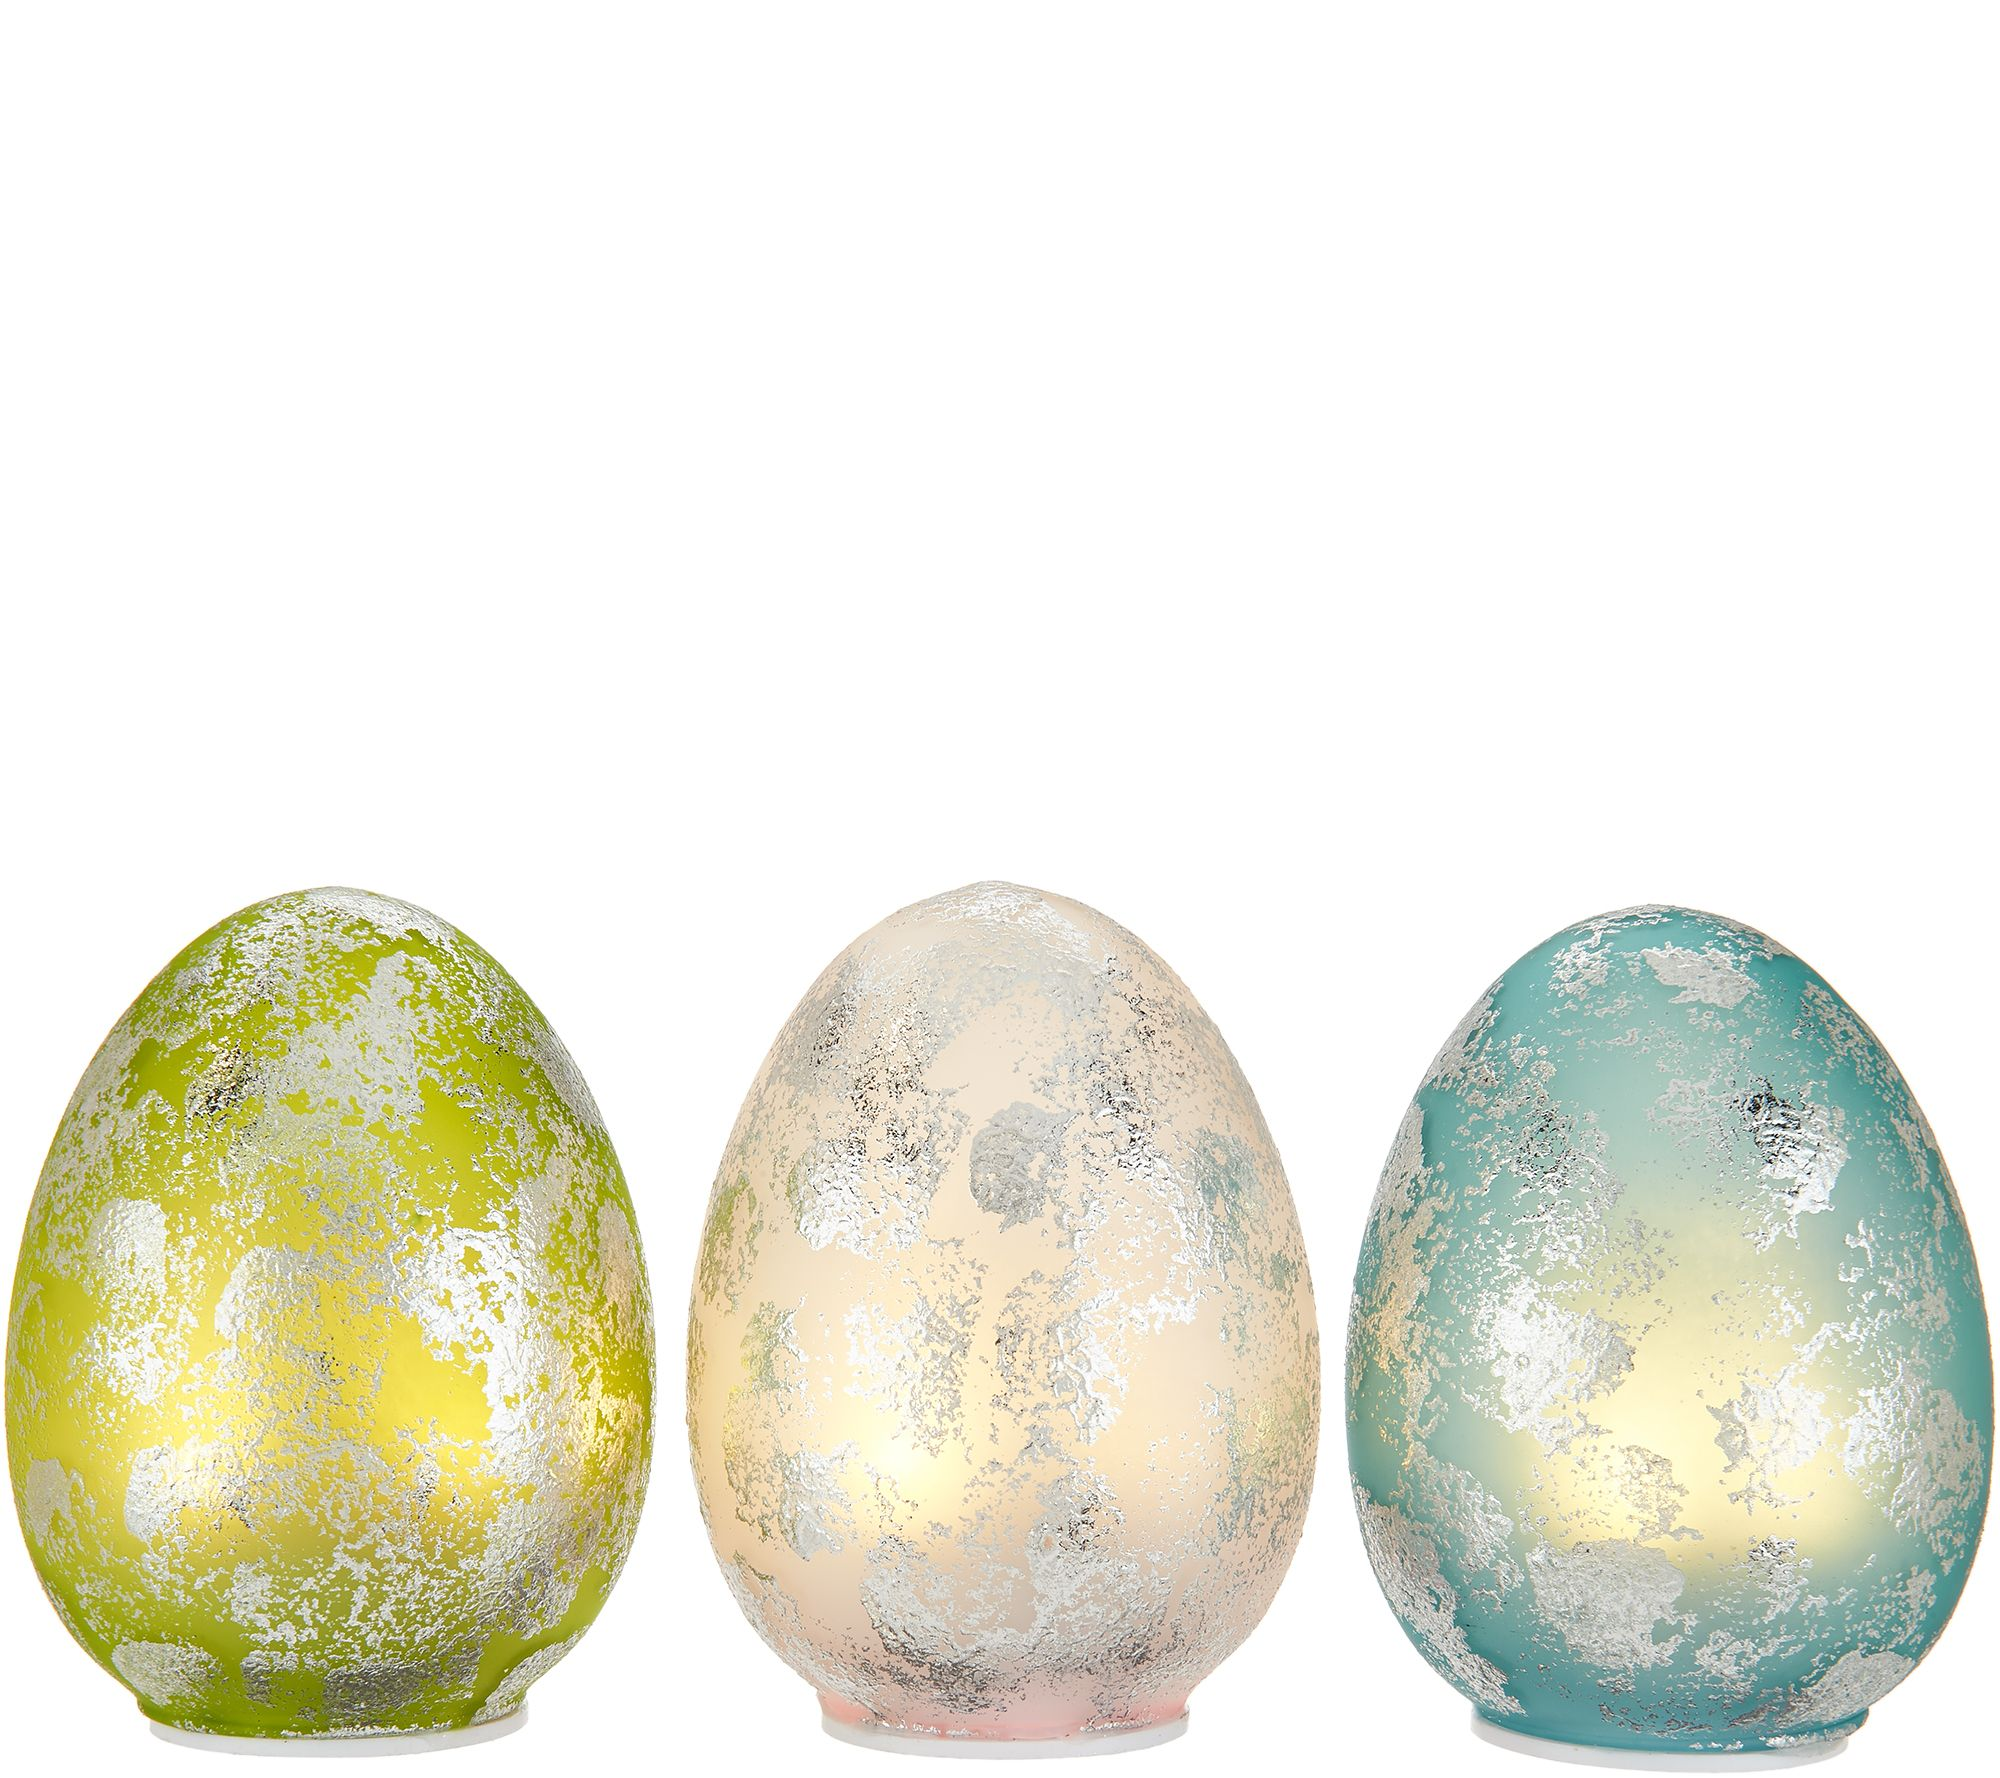 Spring easter dcor qvc set of 3 illuminated foiled finish glass eggs by valerie h213781 negle Choice Image